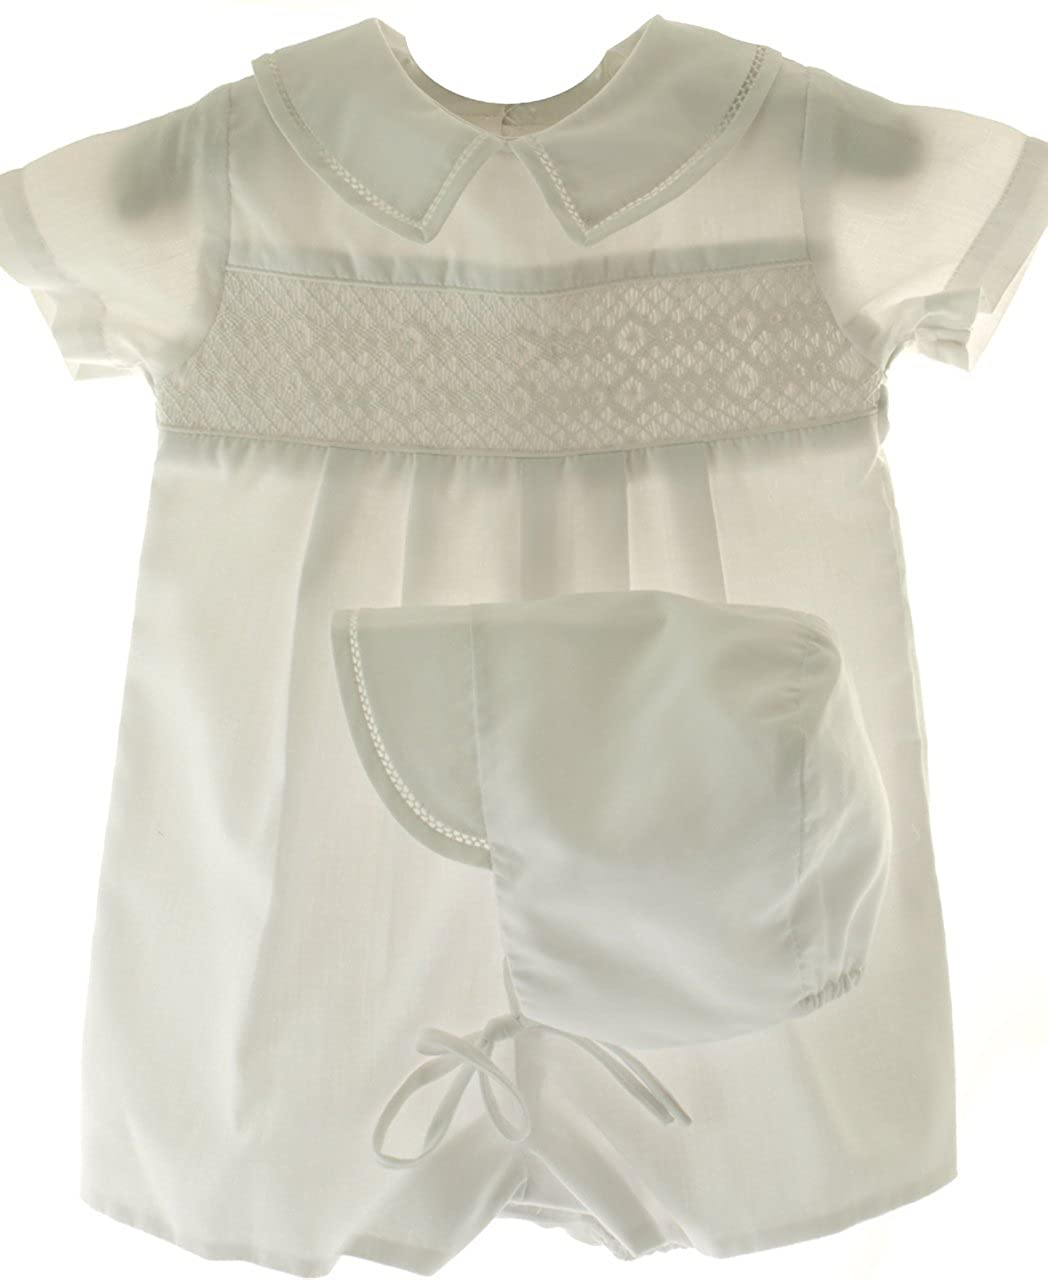 Connie's Kids Baby Boys Romper White Smocked and Hat